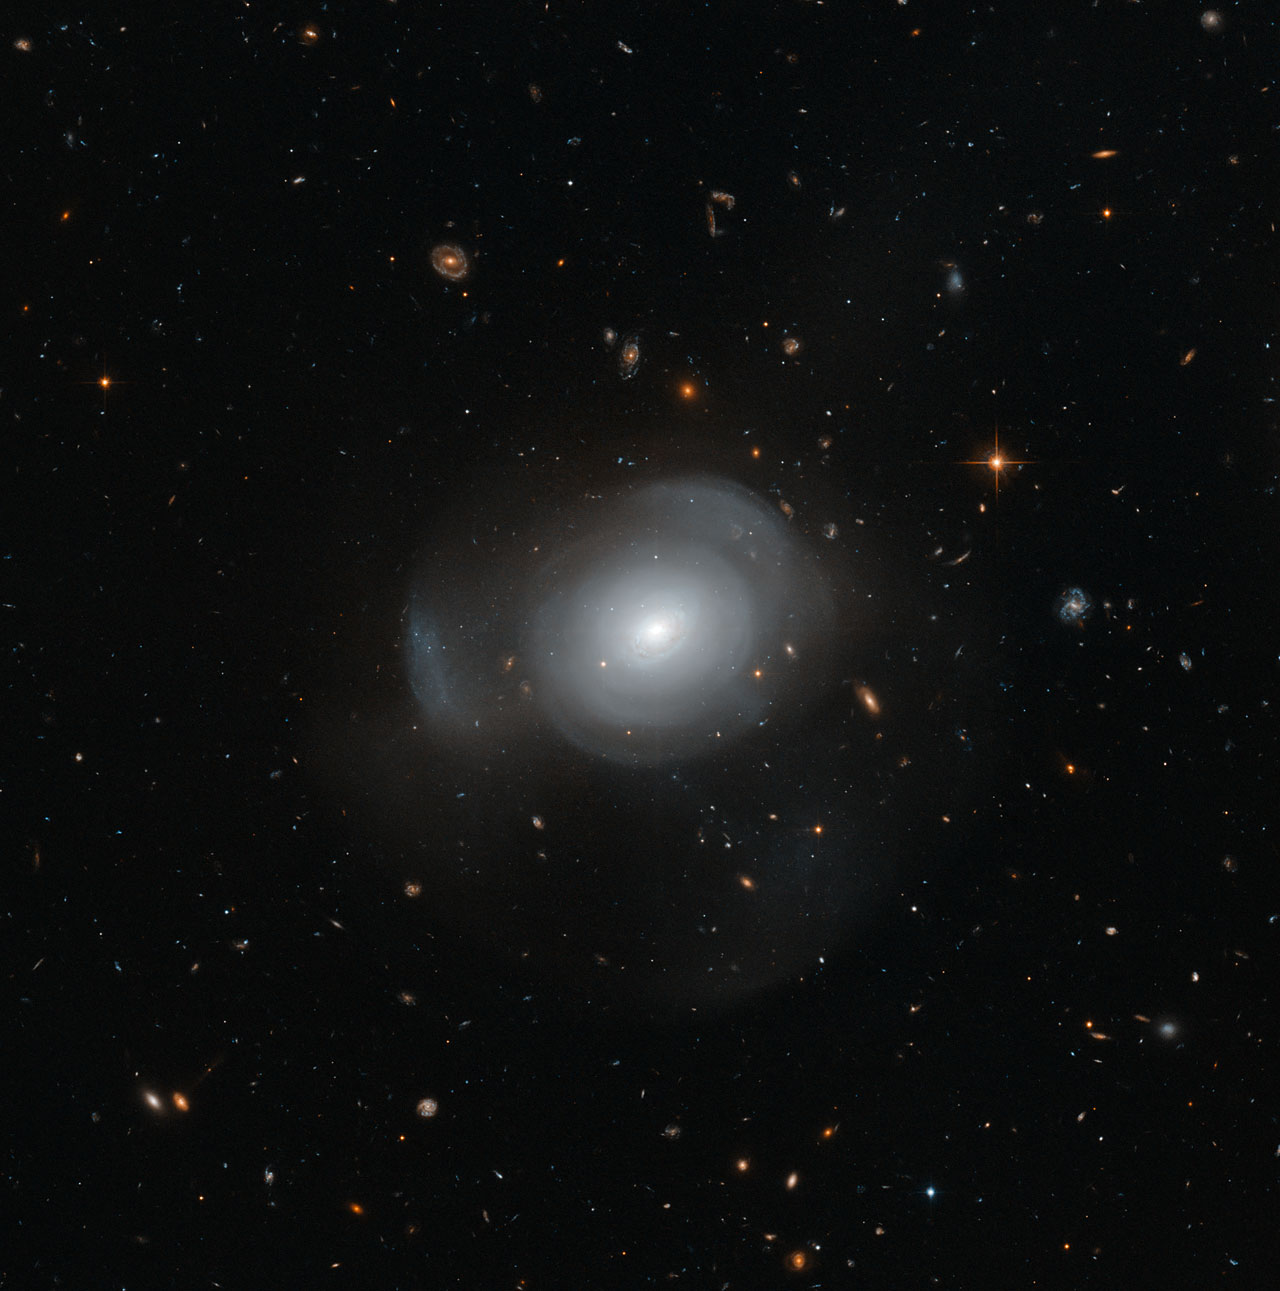 Hubble image of PGC 6240